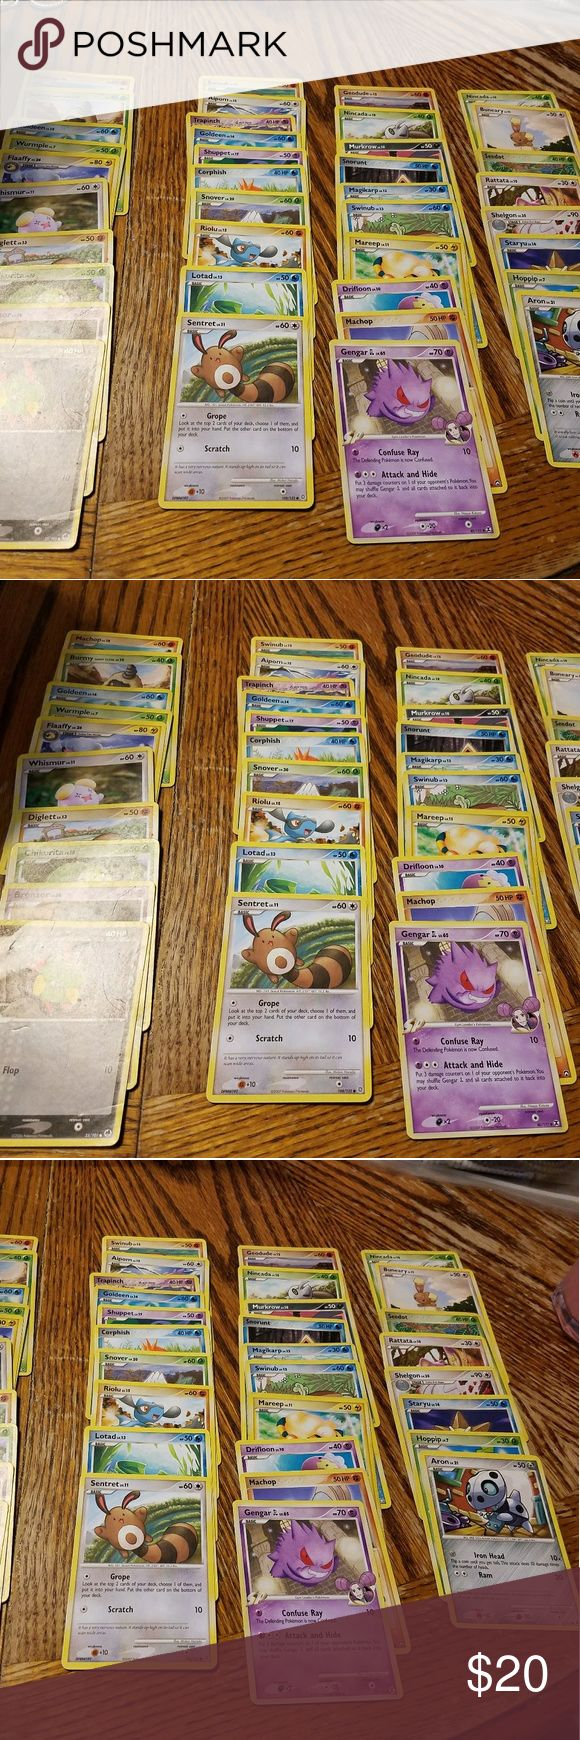 PREOWNED POKEMON CARDS GOOD CONDITION 38 CARDS TOTAL Pokemon Other